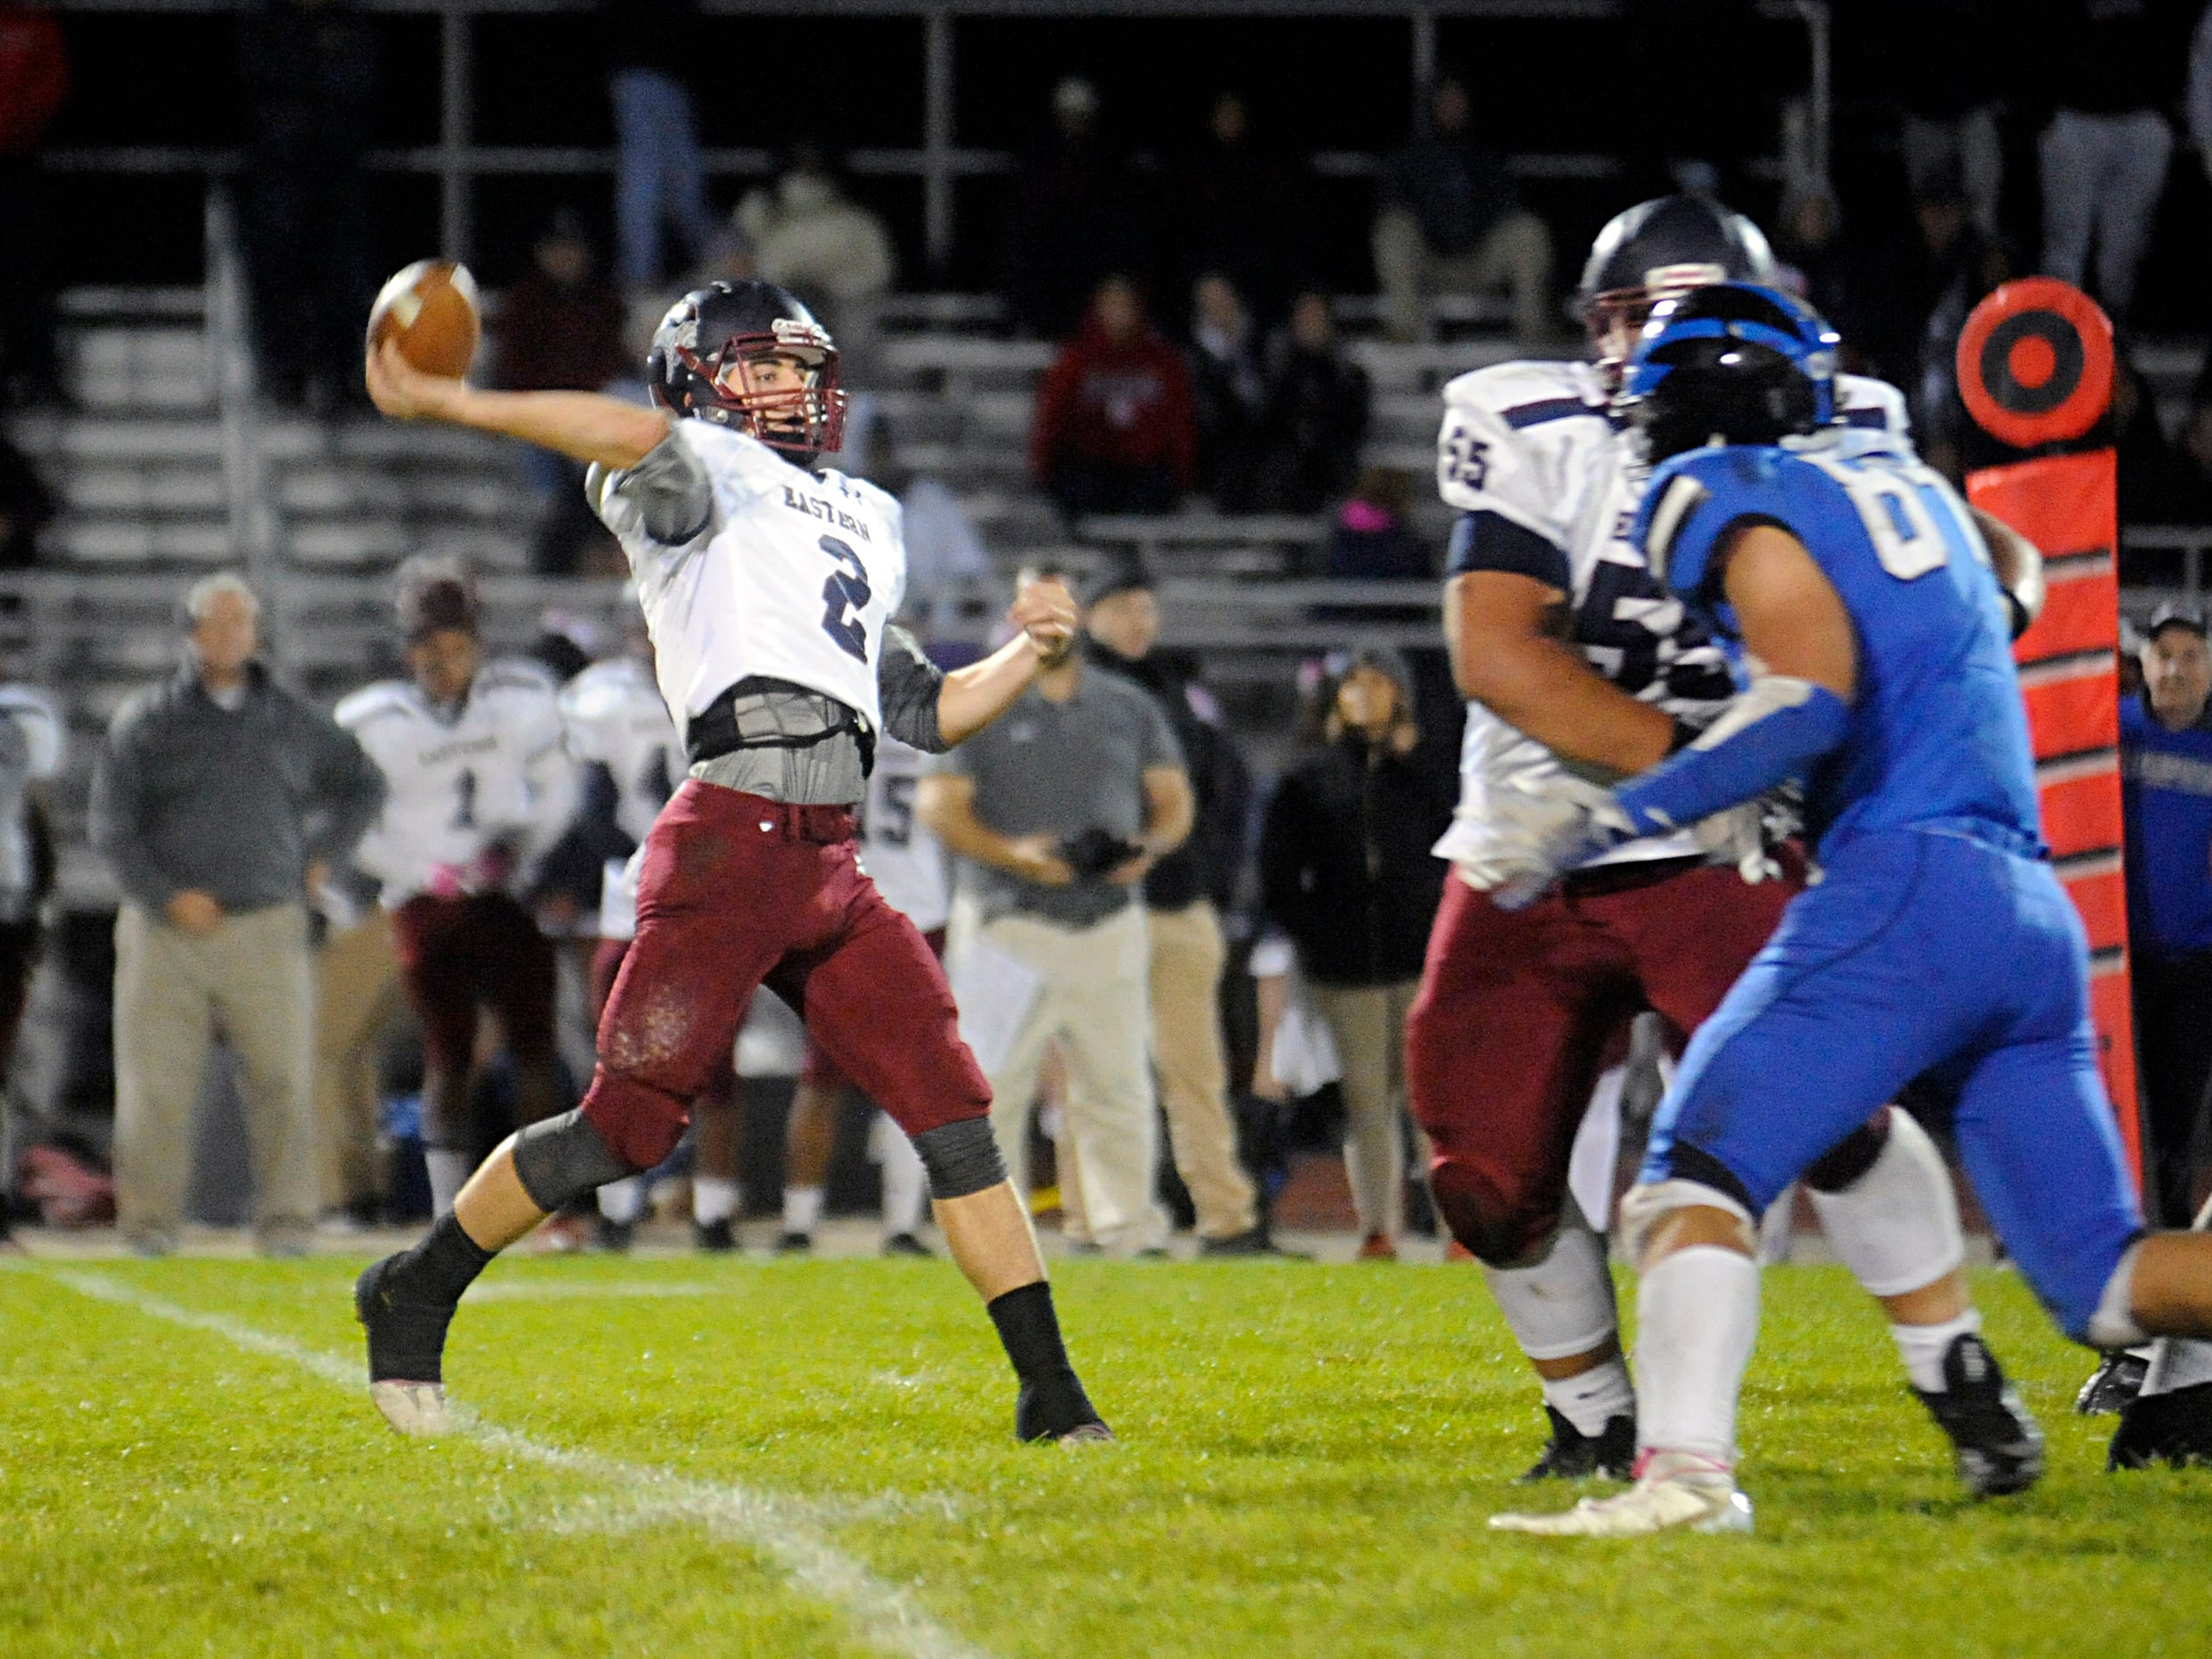 Eastern's QB, Andrew Heck, passes the ball during a game against Hammonton. The visiting Vikings topped the Blue Devils, 13-12, on Friday, October 19, 2018.